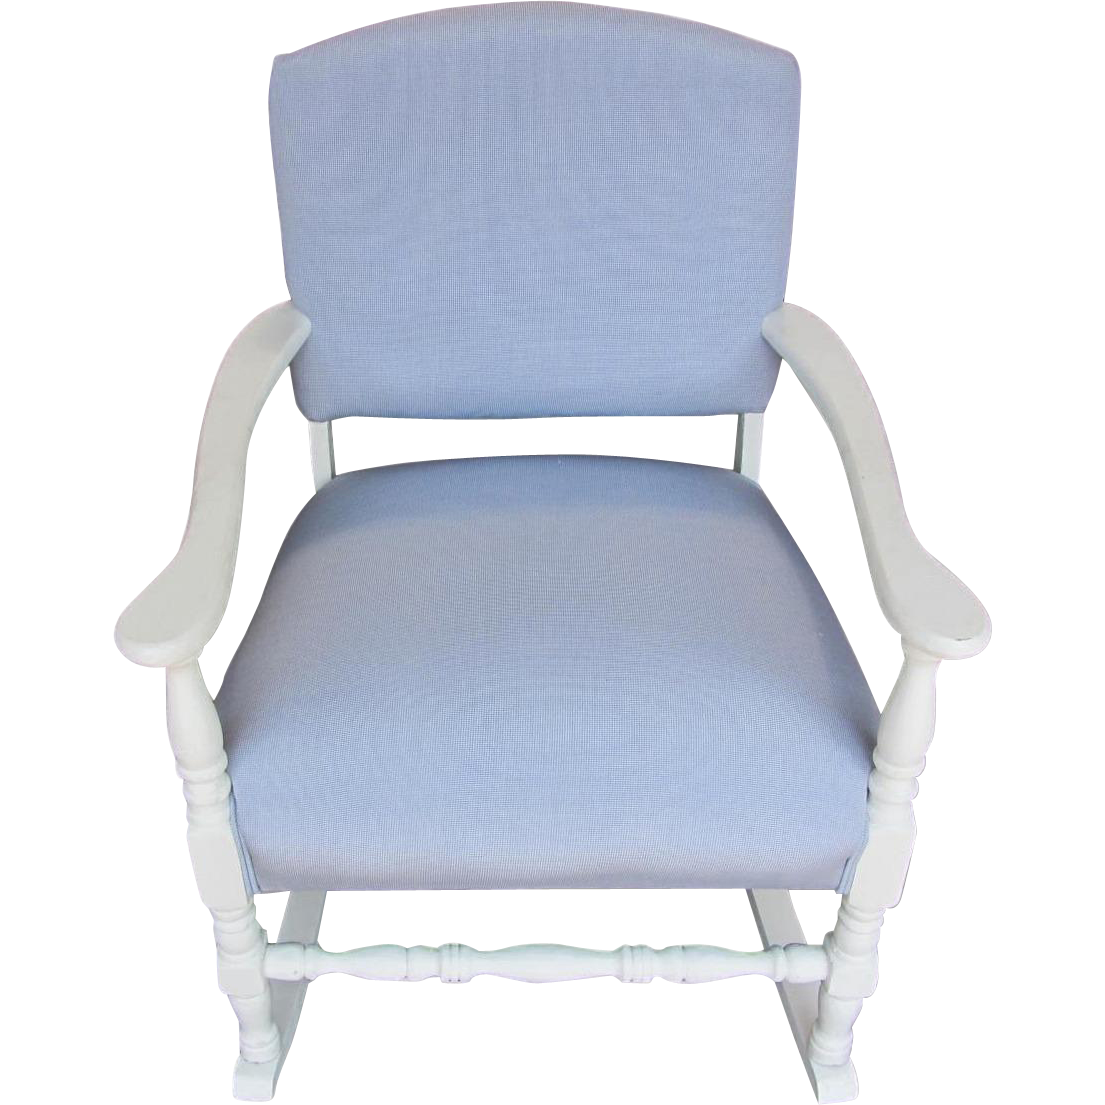 Refurbished Vintage Rocker In Blue Gingham From Bwhome On Ruby Lane. Full resolution  file, nominally Width 1105 Height 1105 pixels, file with #475B84.